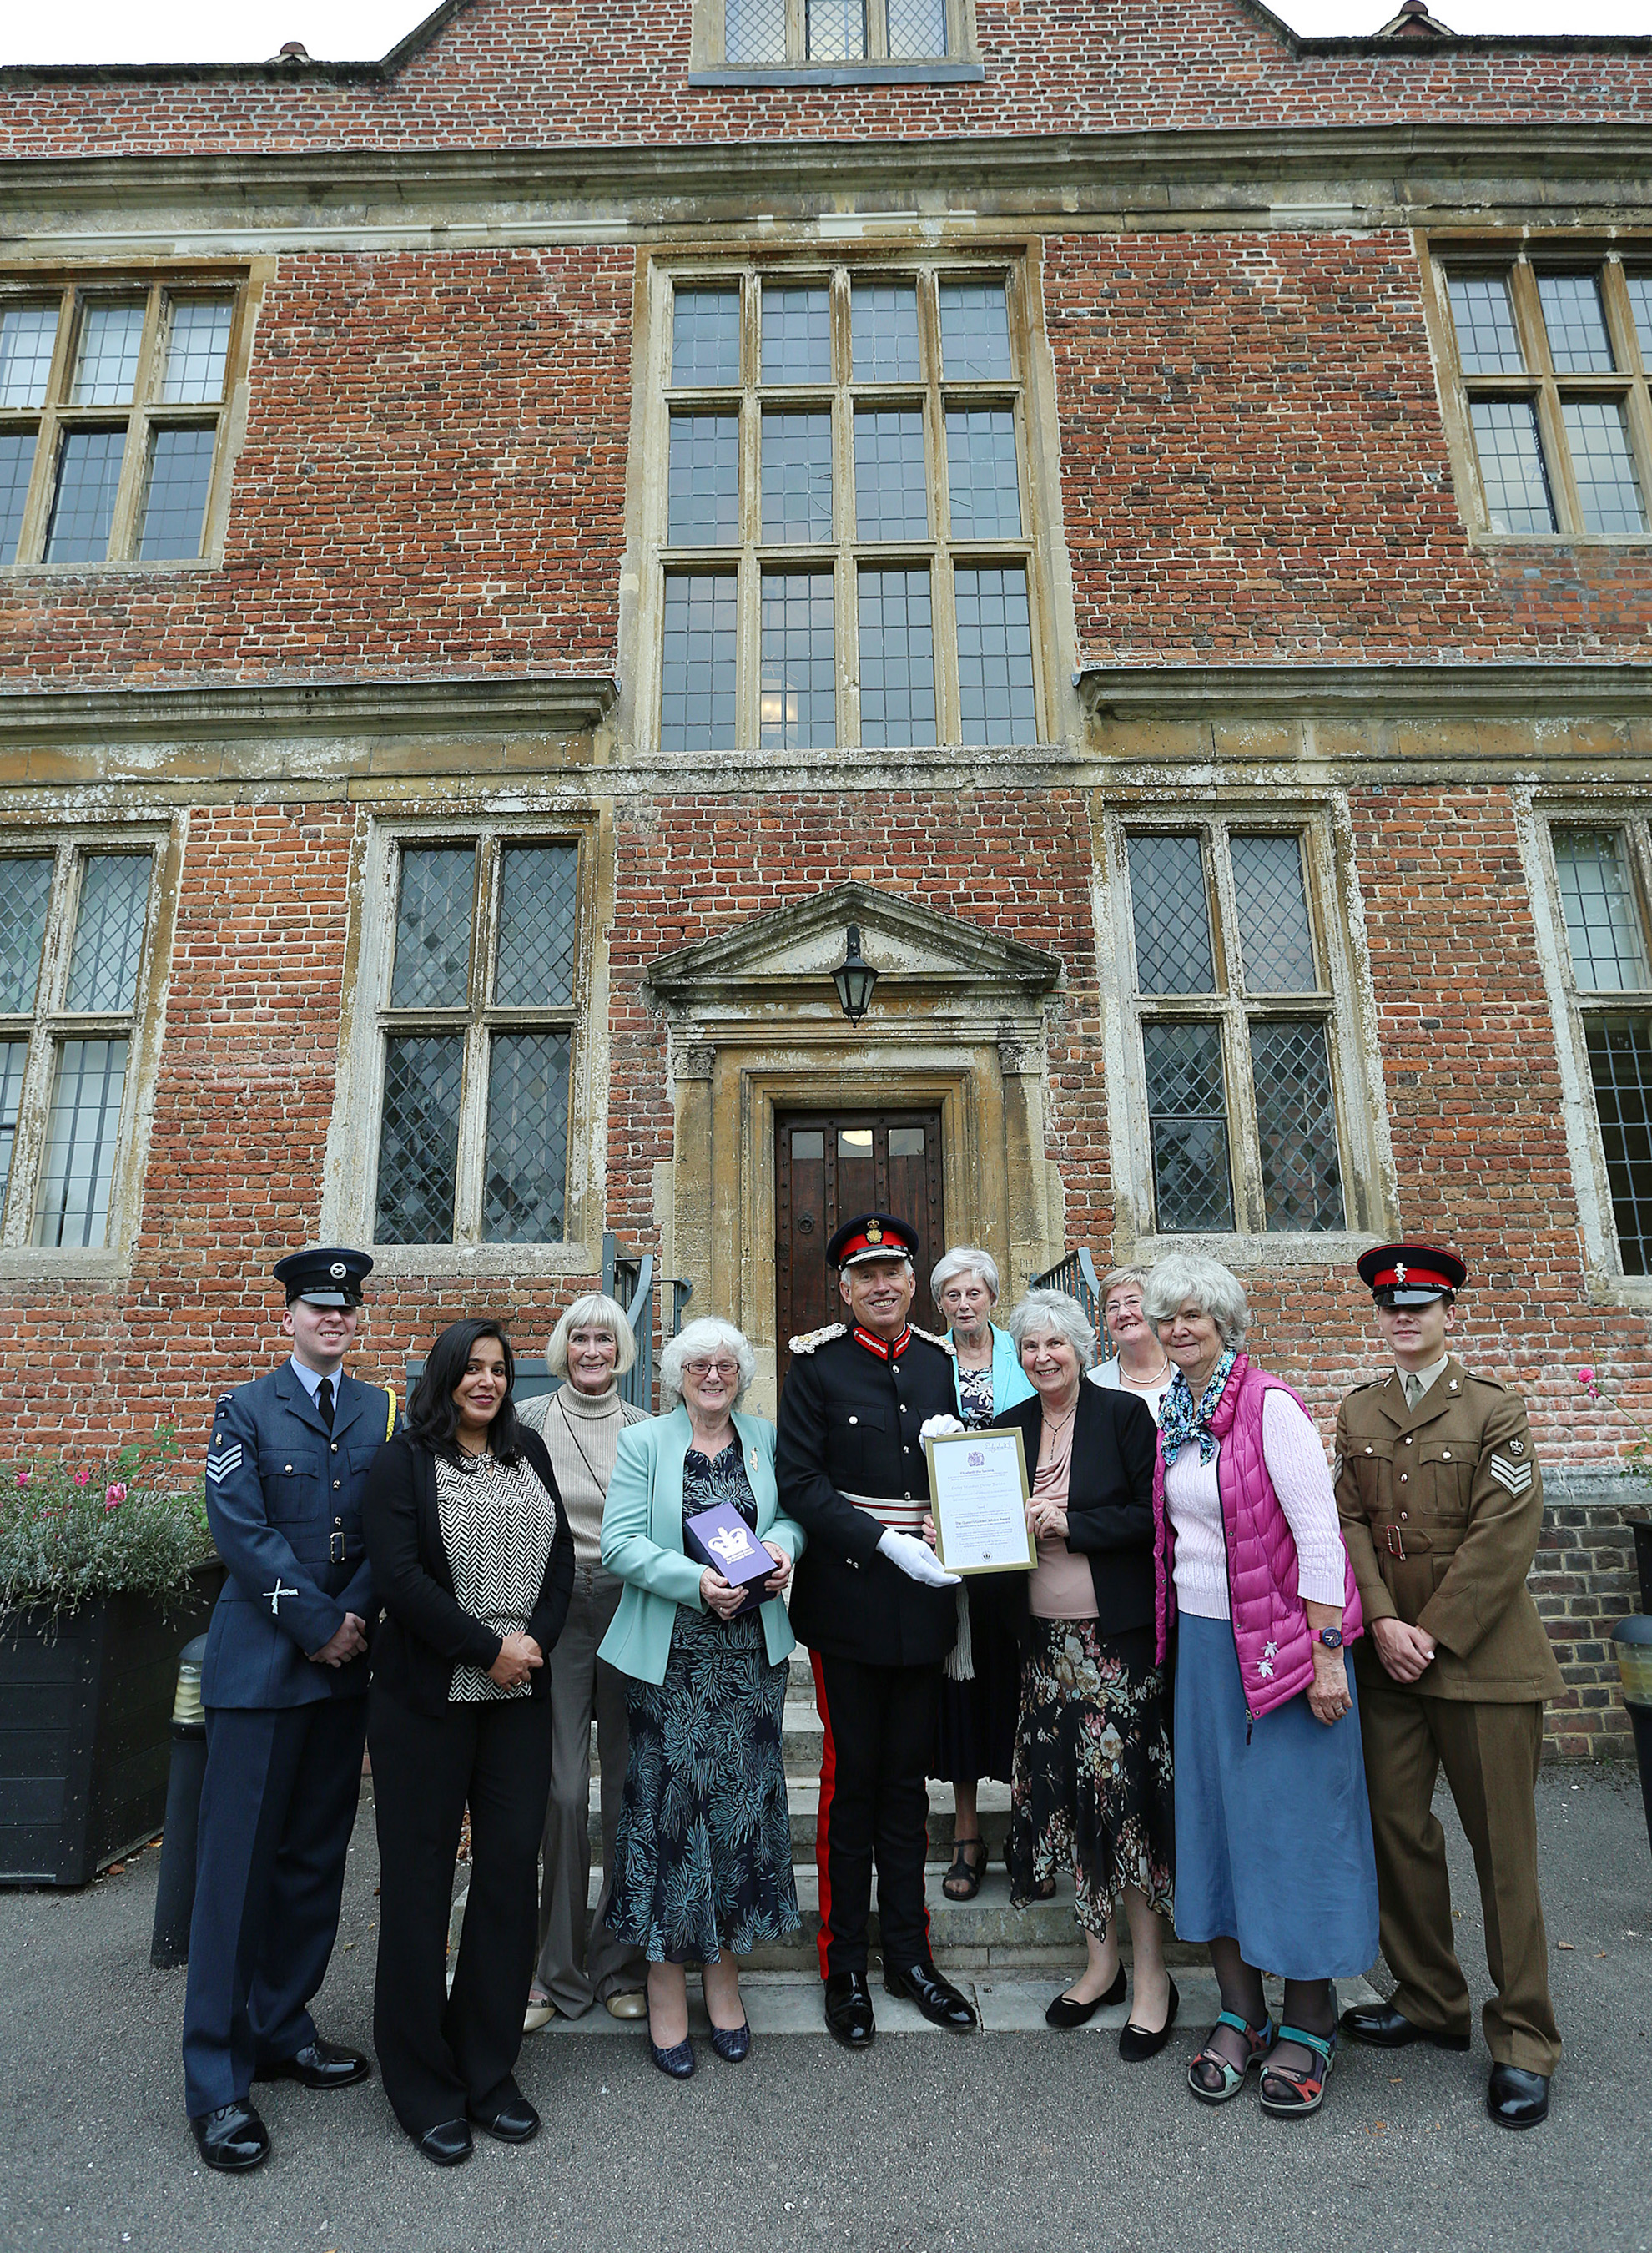 Queen's Award for Voluntary Service - 2016